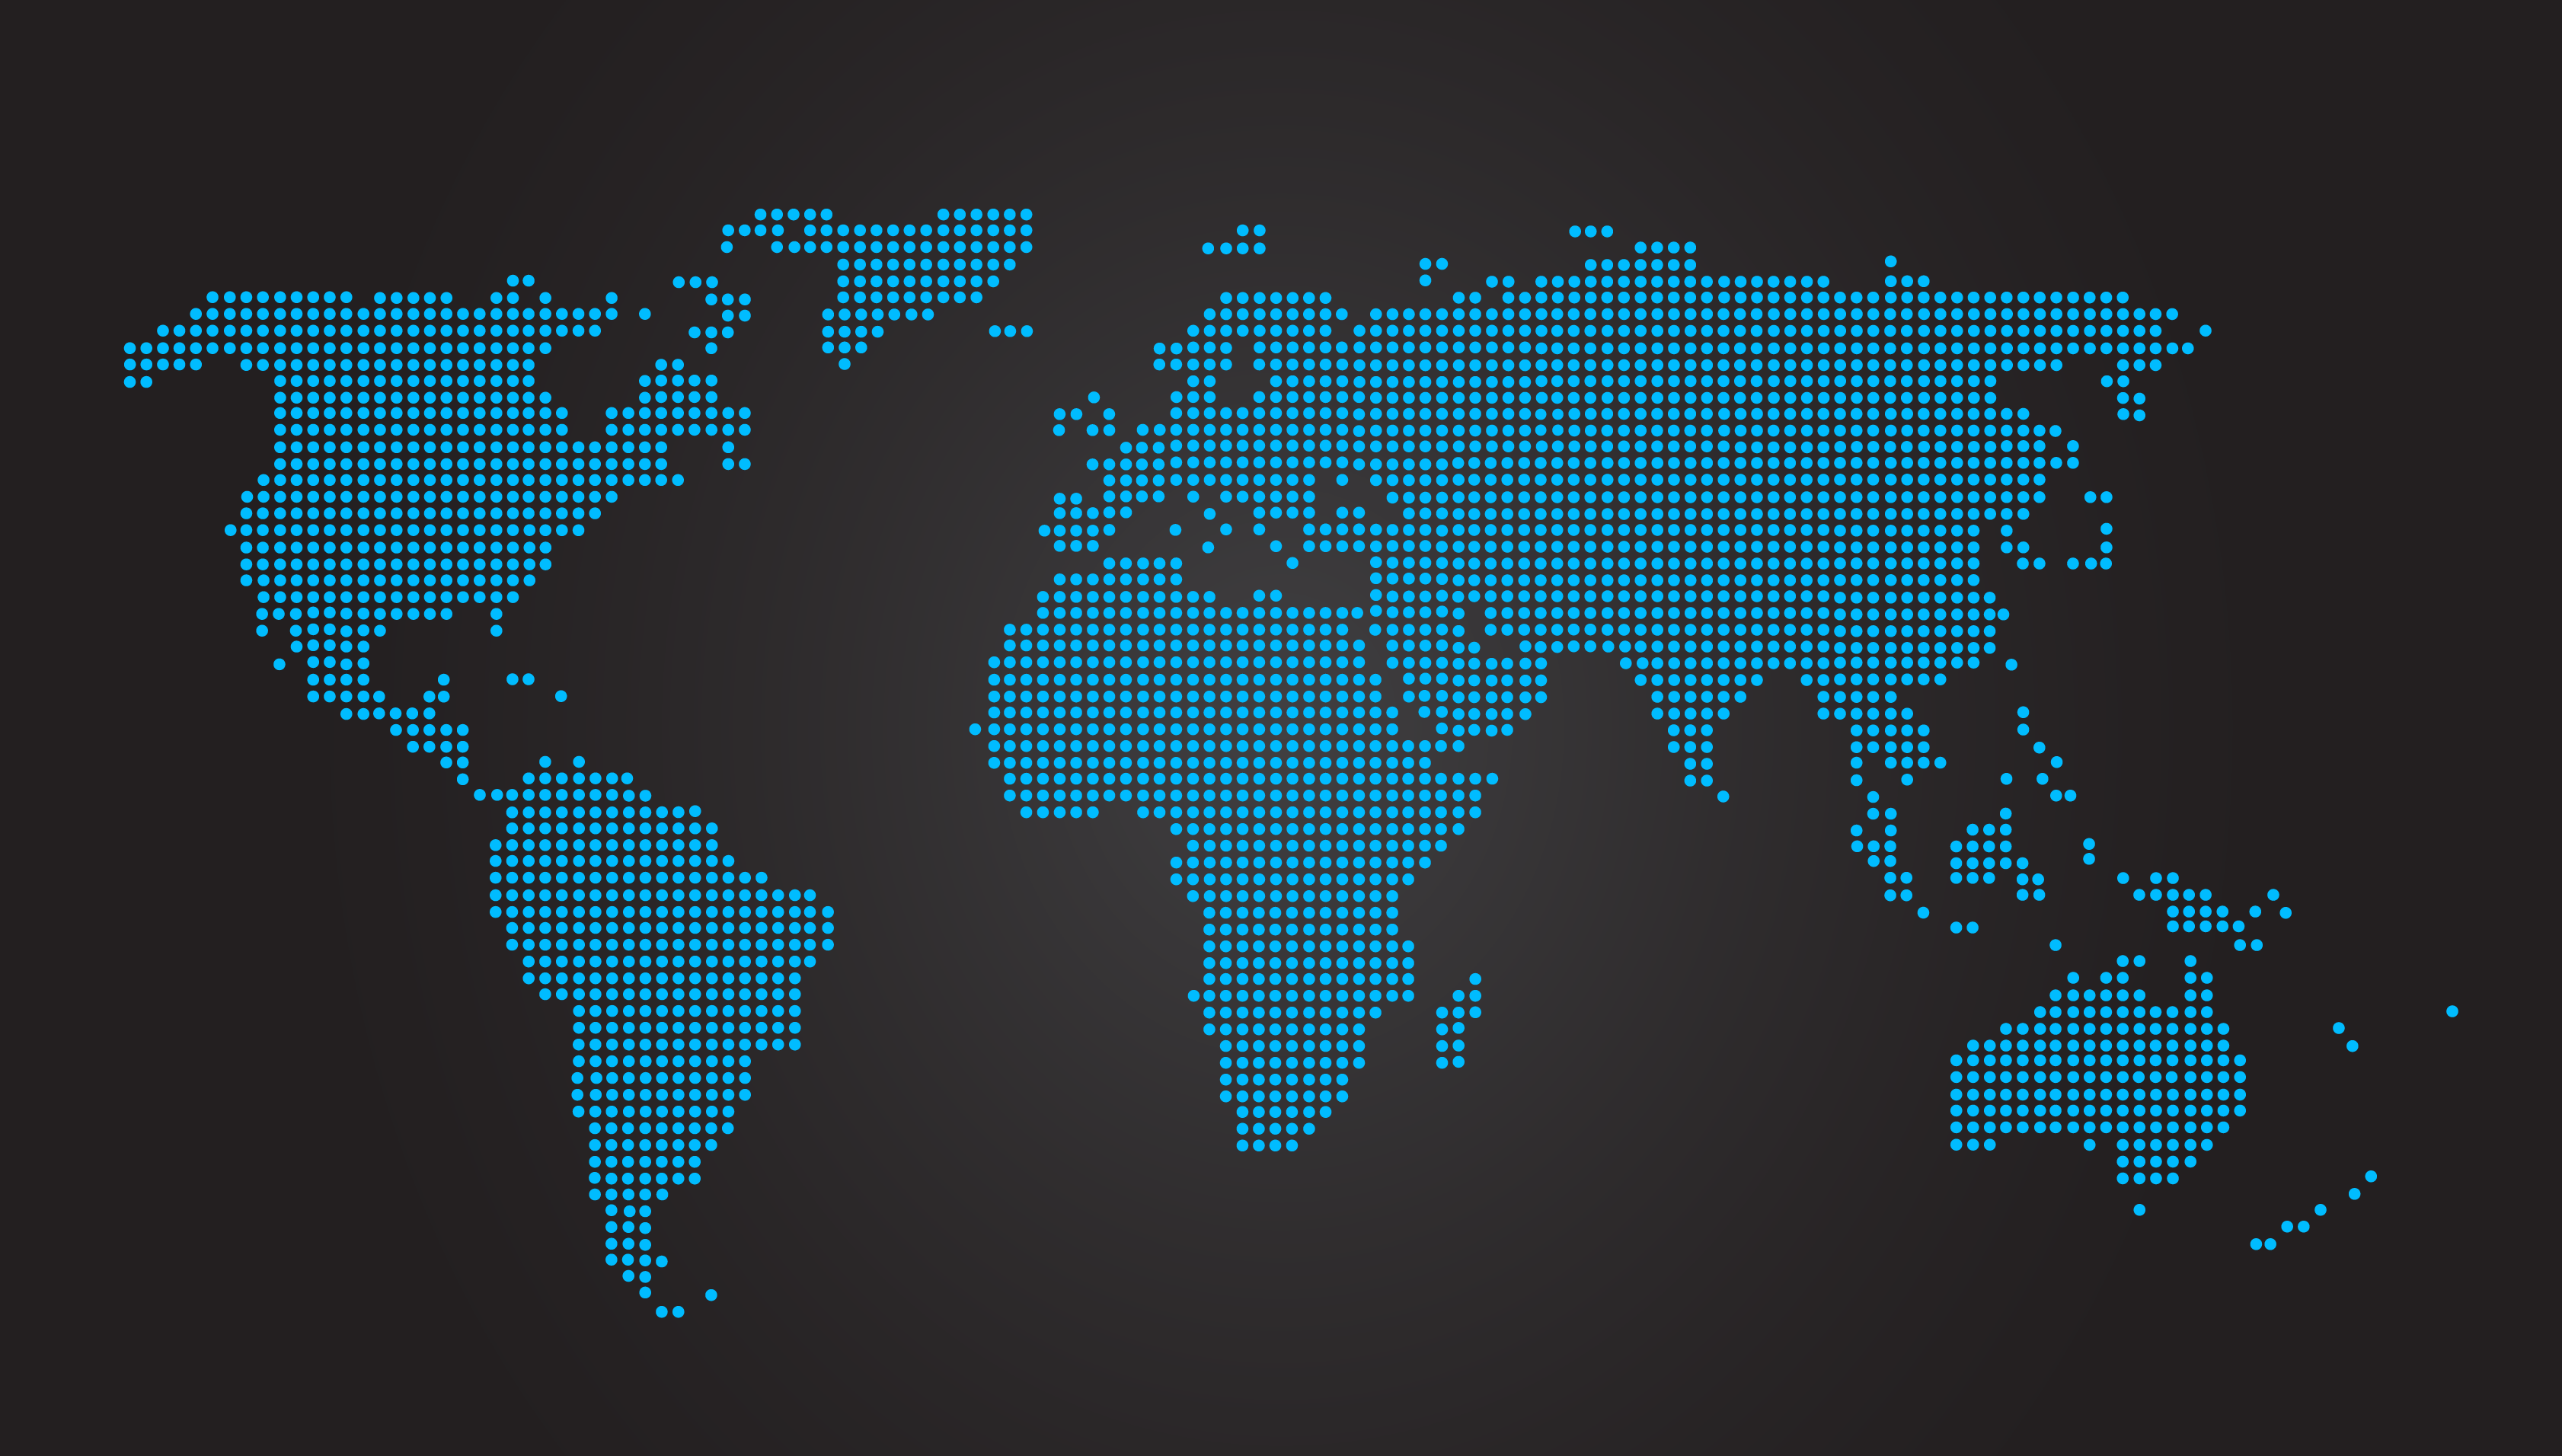 world-map-dotted-black